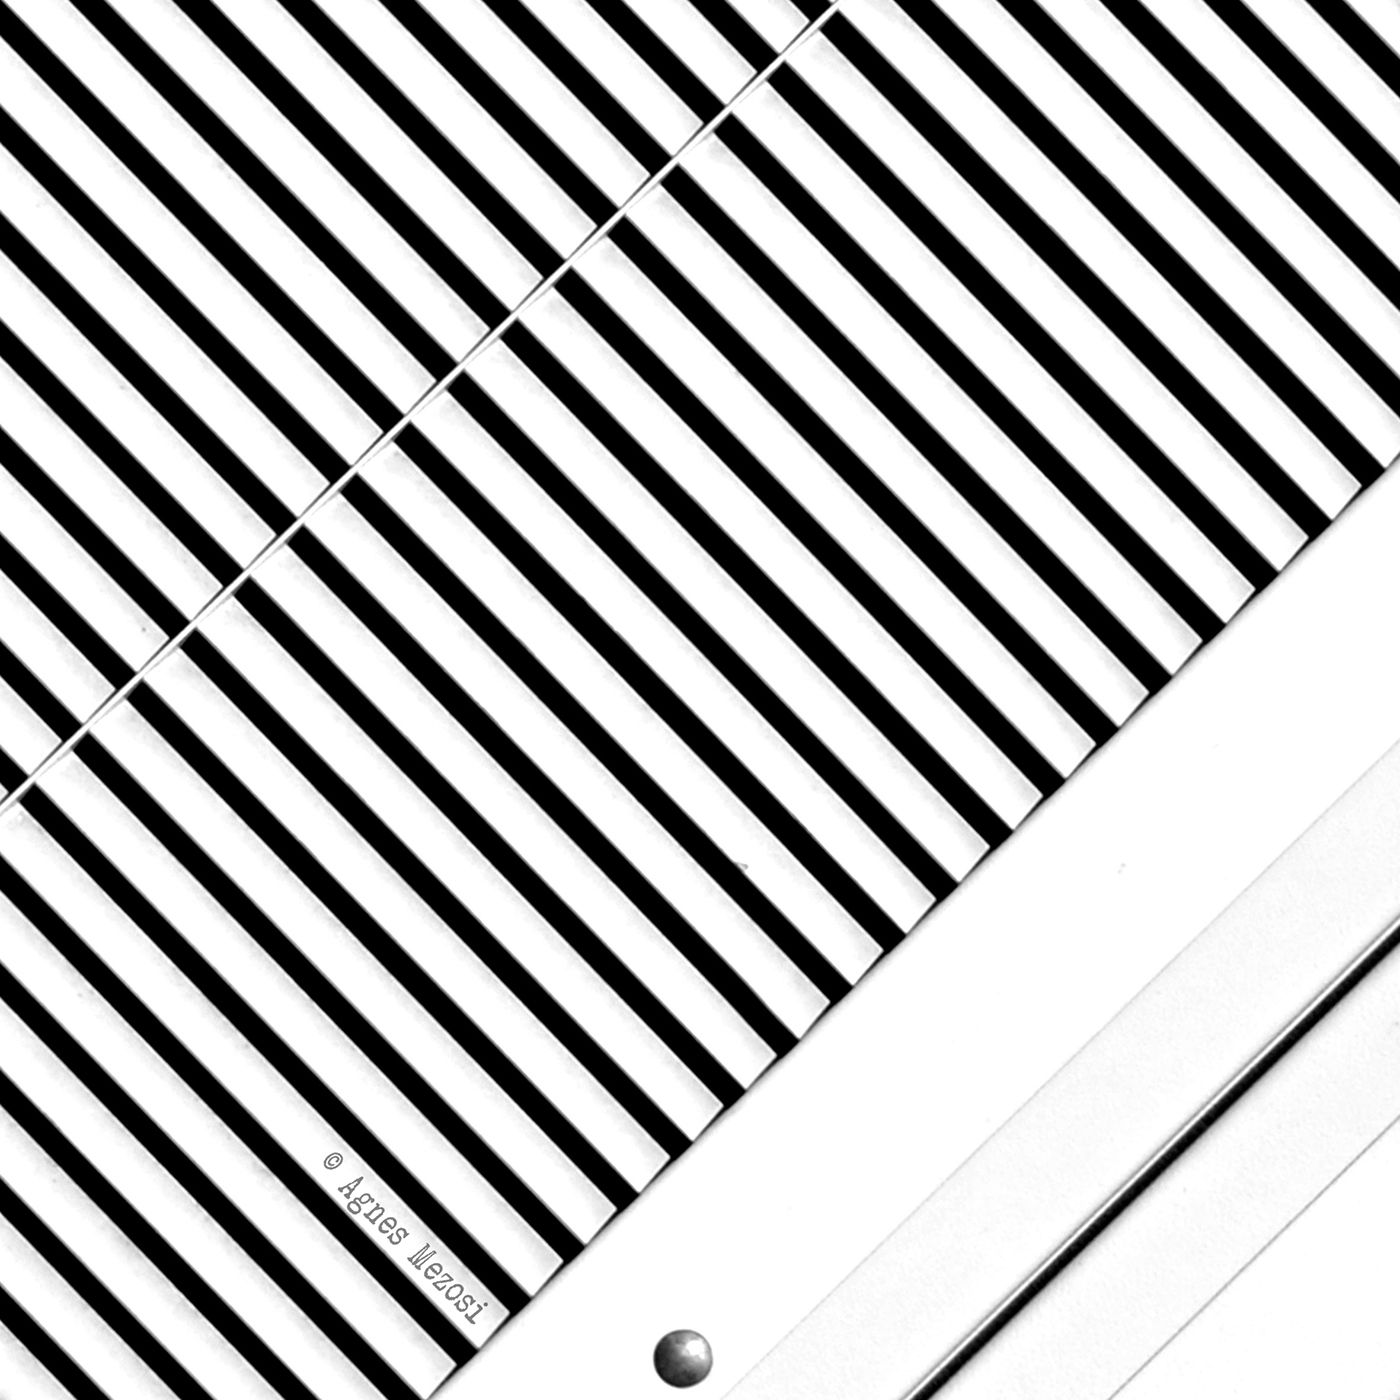 Thick Black And White Striped Wallpaper